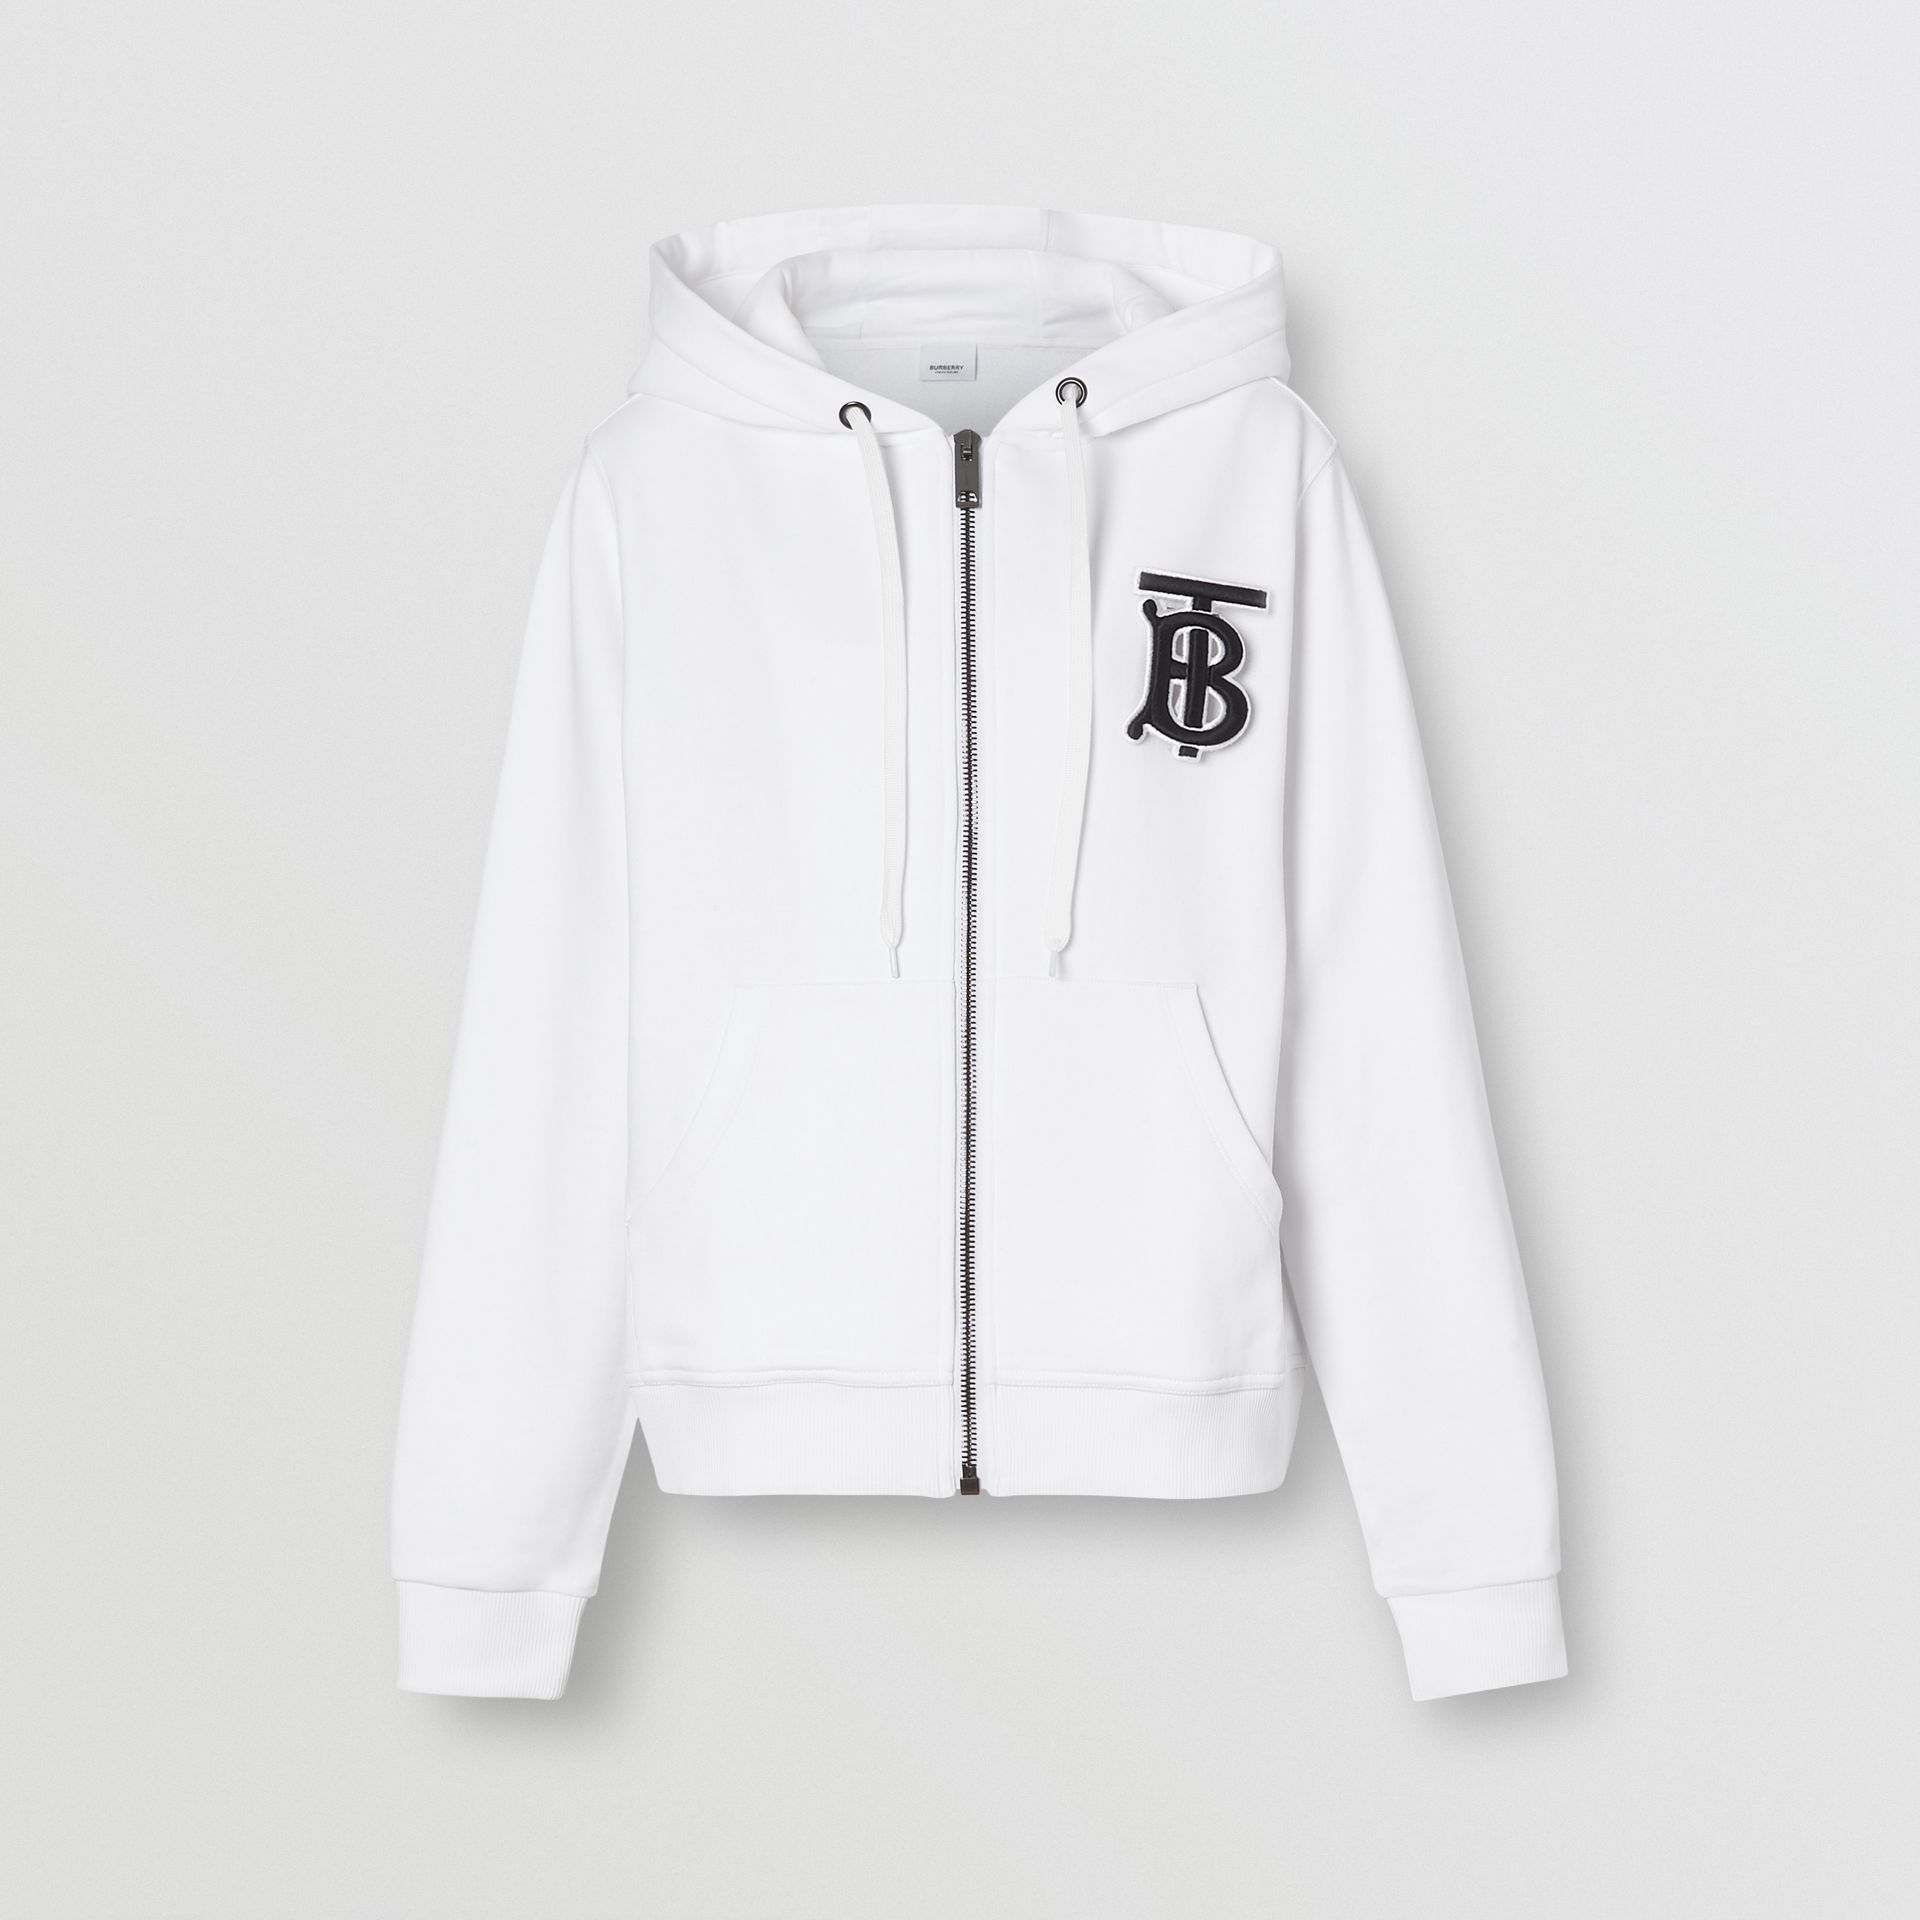 Monogram Motif Cotton Oversized Hooded Top in White - Women | Burberry - gallery image 3